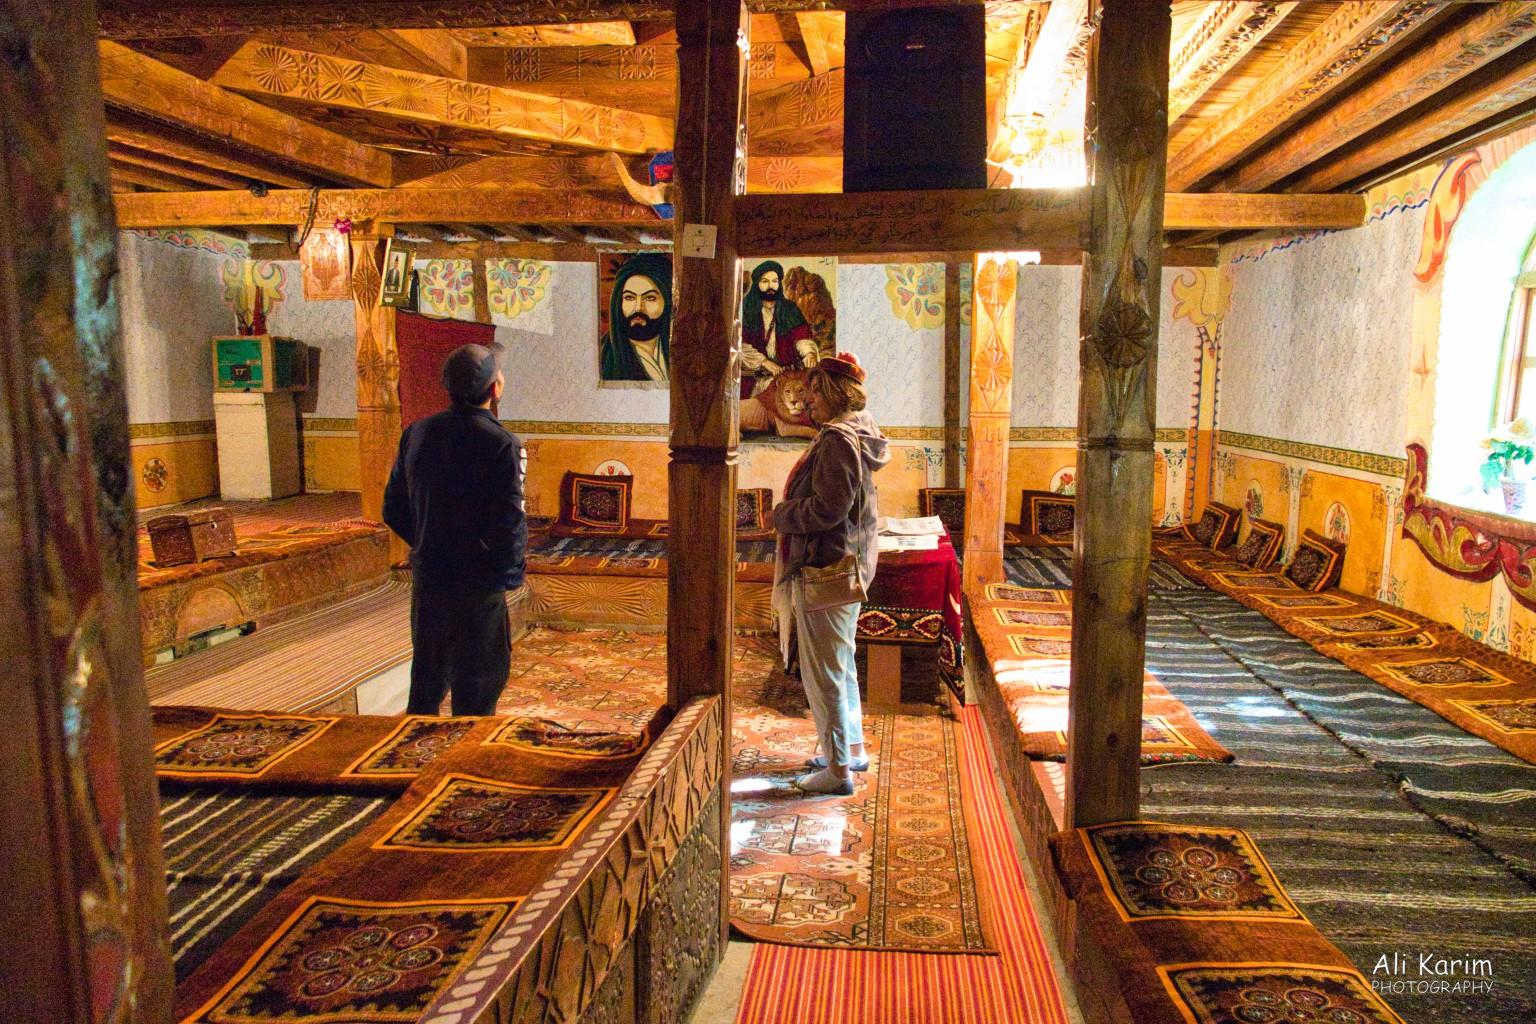 Langar, Bulunkul Tajikistan, Inside the Pamiri prayer house in Langar; similar to the prayer house in Hisor, but with more wood carvings and more elaborate overall